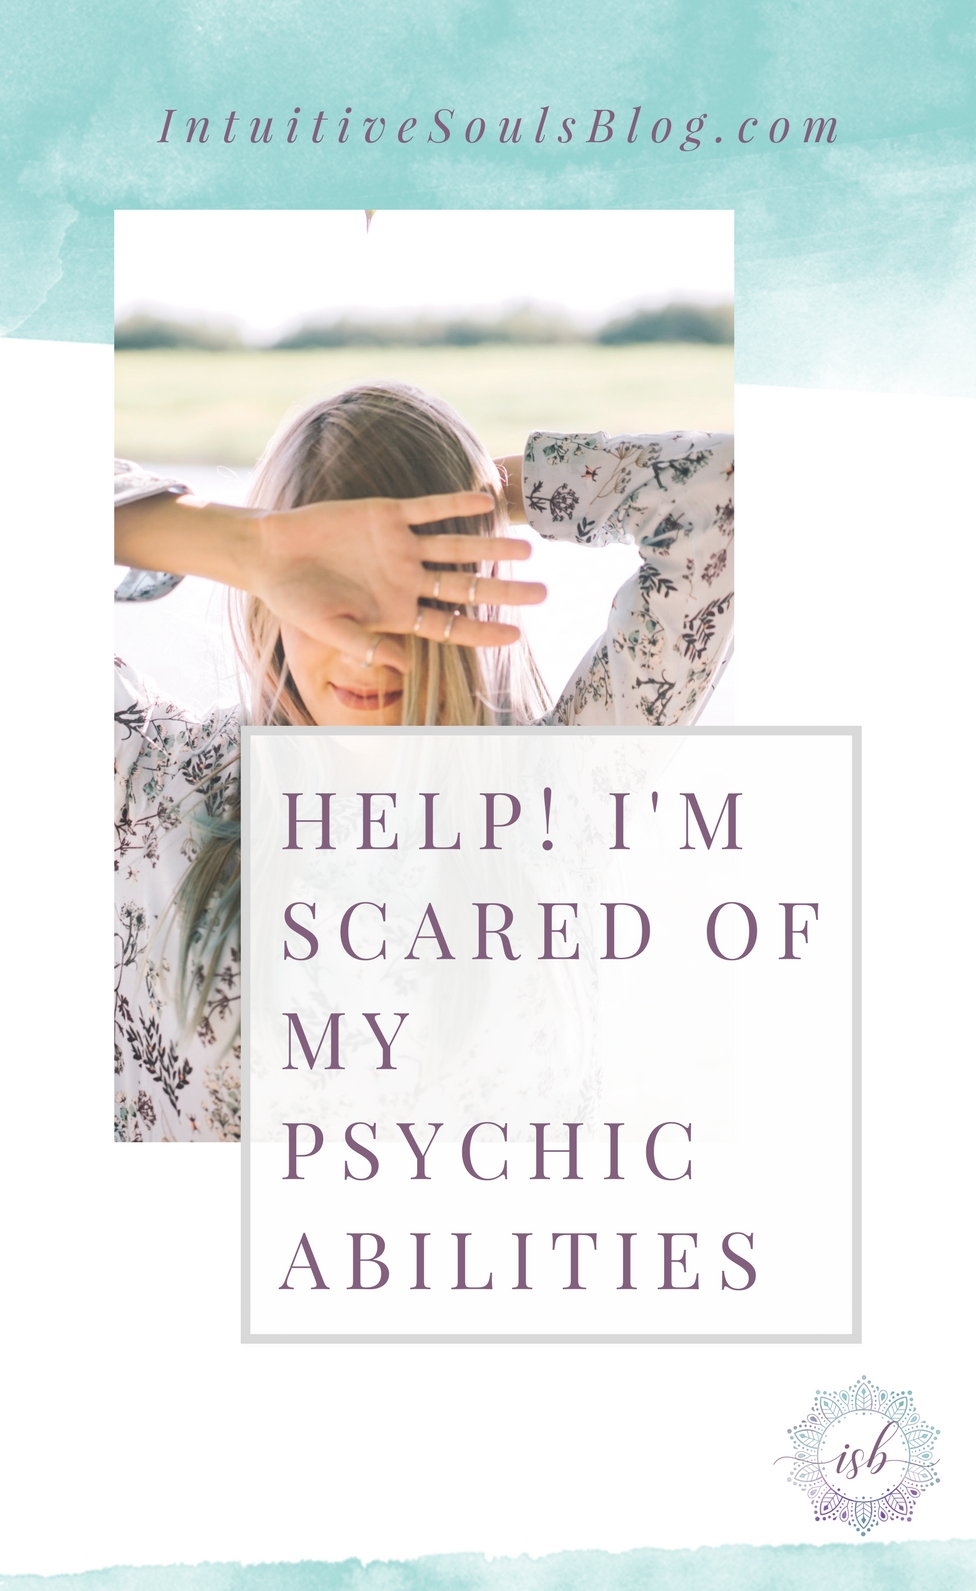 I feel your pain... years ago, I was scared of my psychic abilities, too! Honestly, I don't think anyone on earth was more afraid than me... that's why I KNOW that these 4 steps work perfectly for overcoming fear and embracing your awesome intuitive gifts!